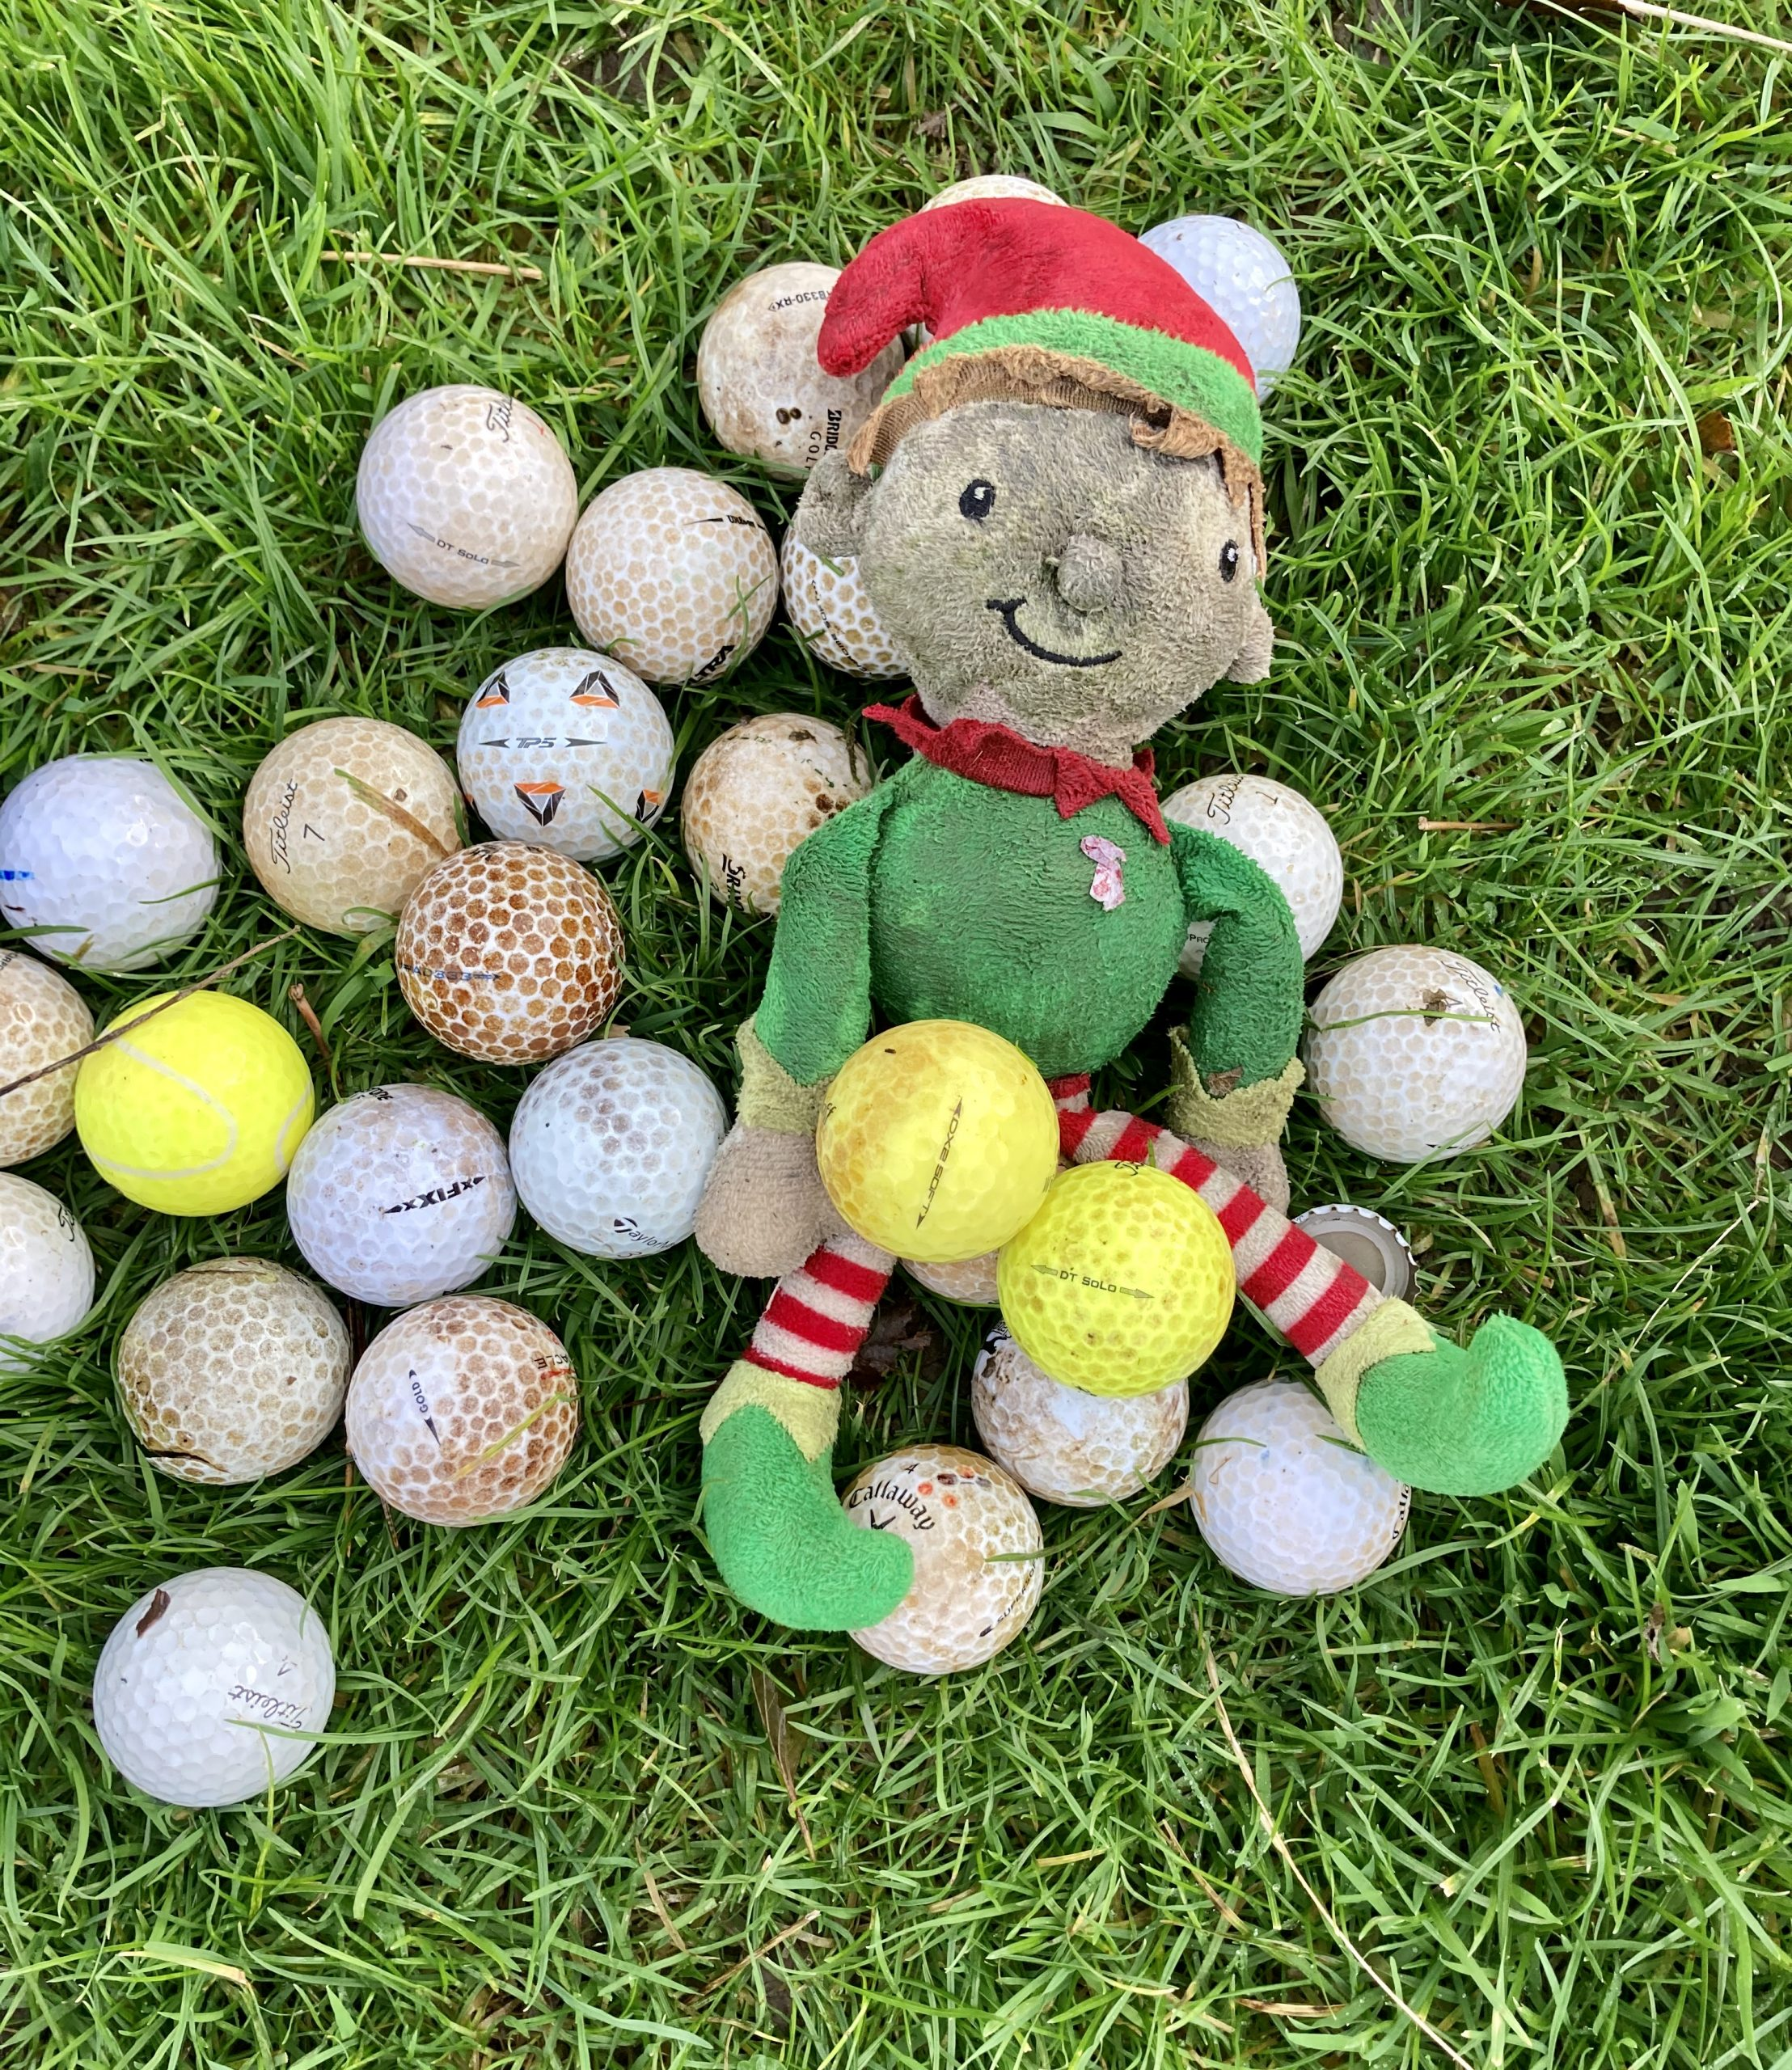 Just some of the 51 golf balls removed from the river... and an Elf!